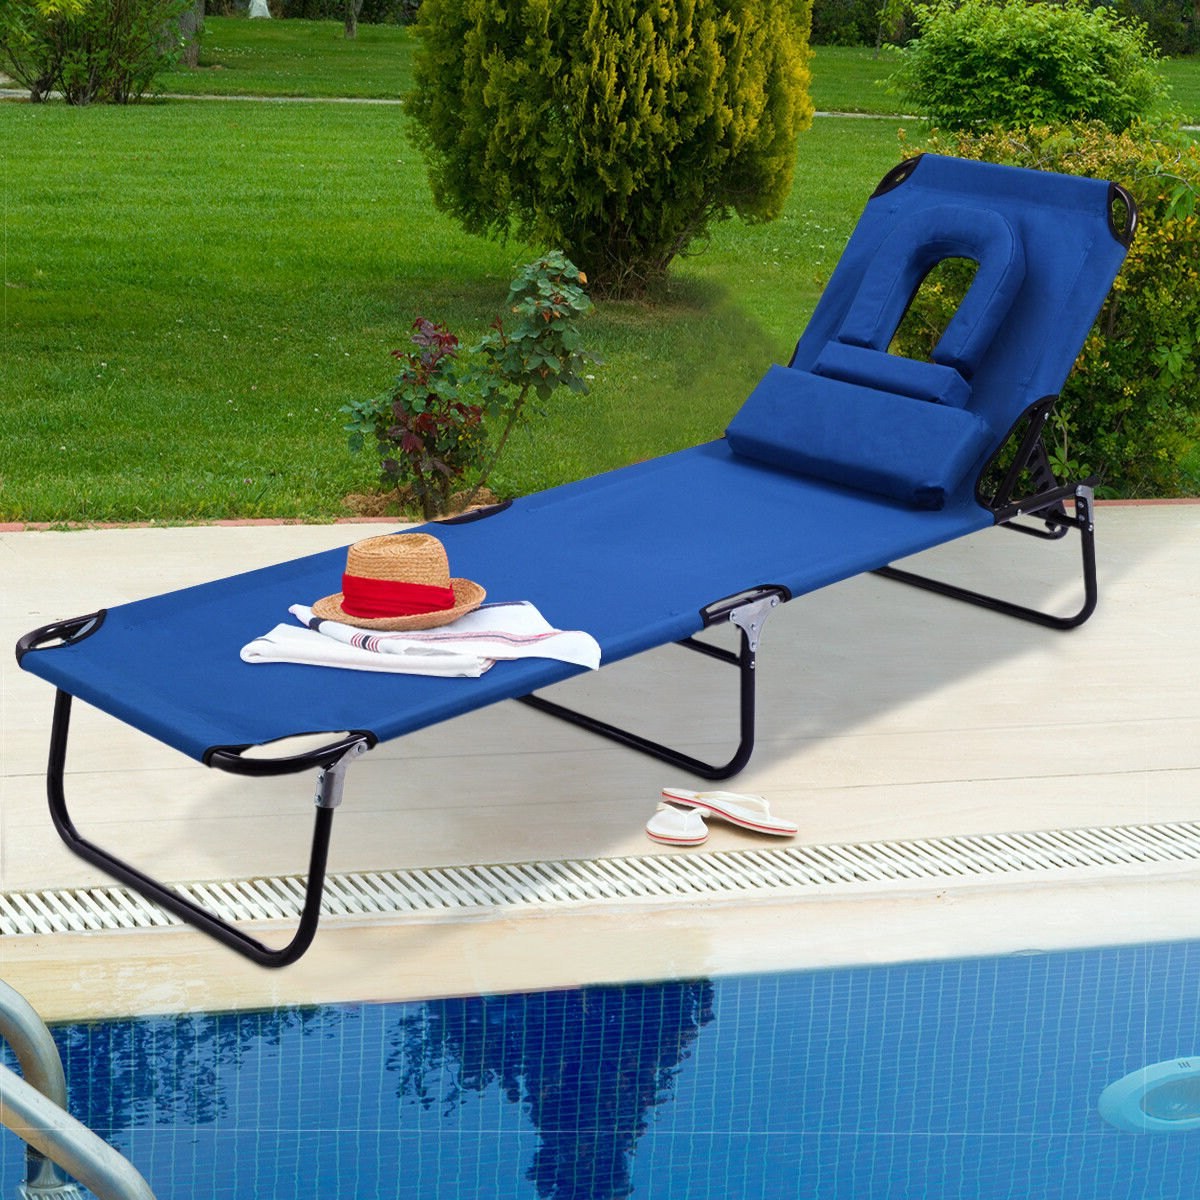 Foldable Camping And Lounge Chairs Within 2020 Costway Patio Foldable Chaise Lounge Chair Bed Outdoor Beach Camping  Recliner Pool Yard (View 8 of 25)